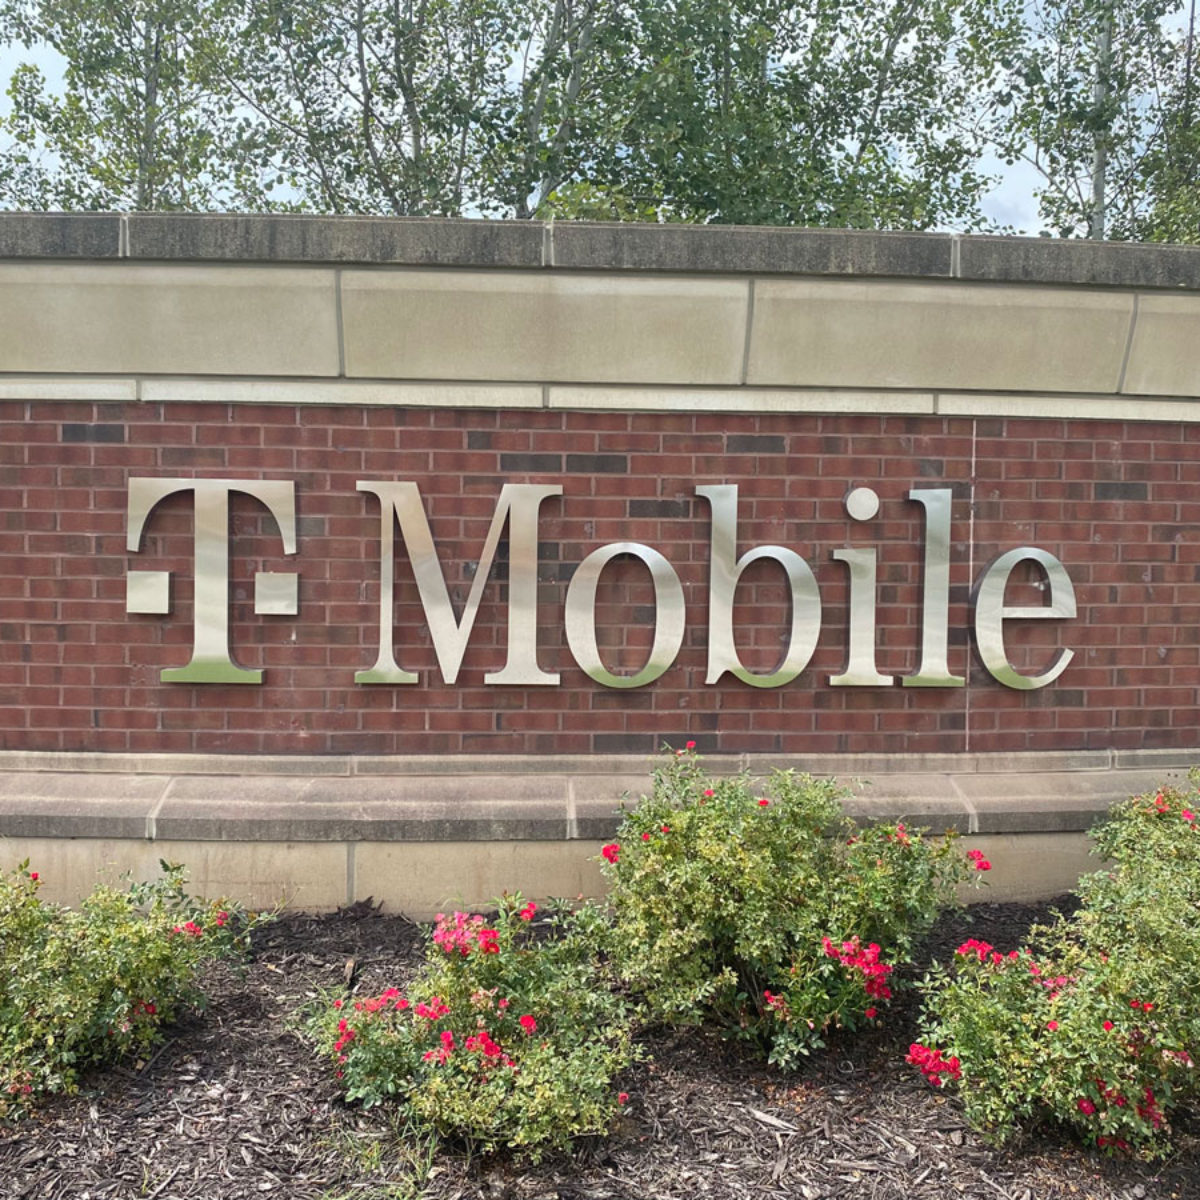 T-mobile Channel Letters